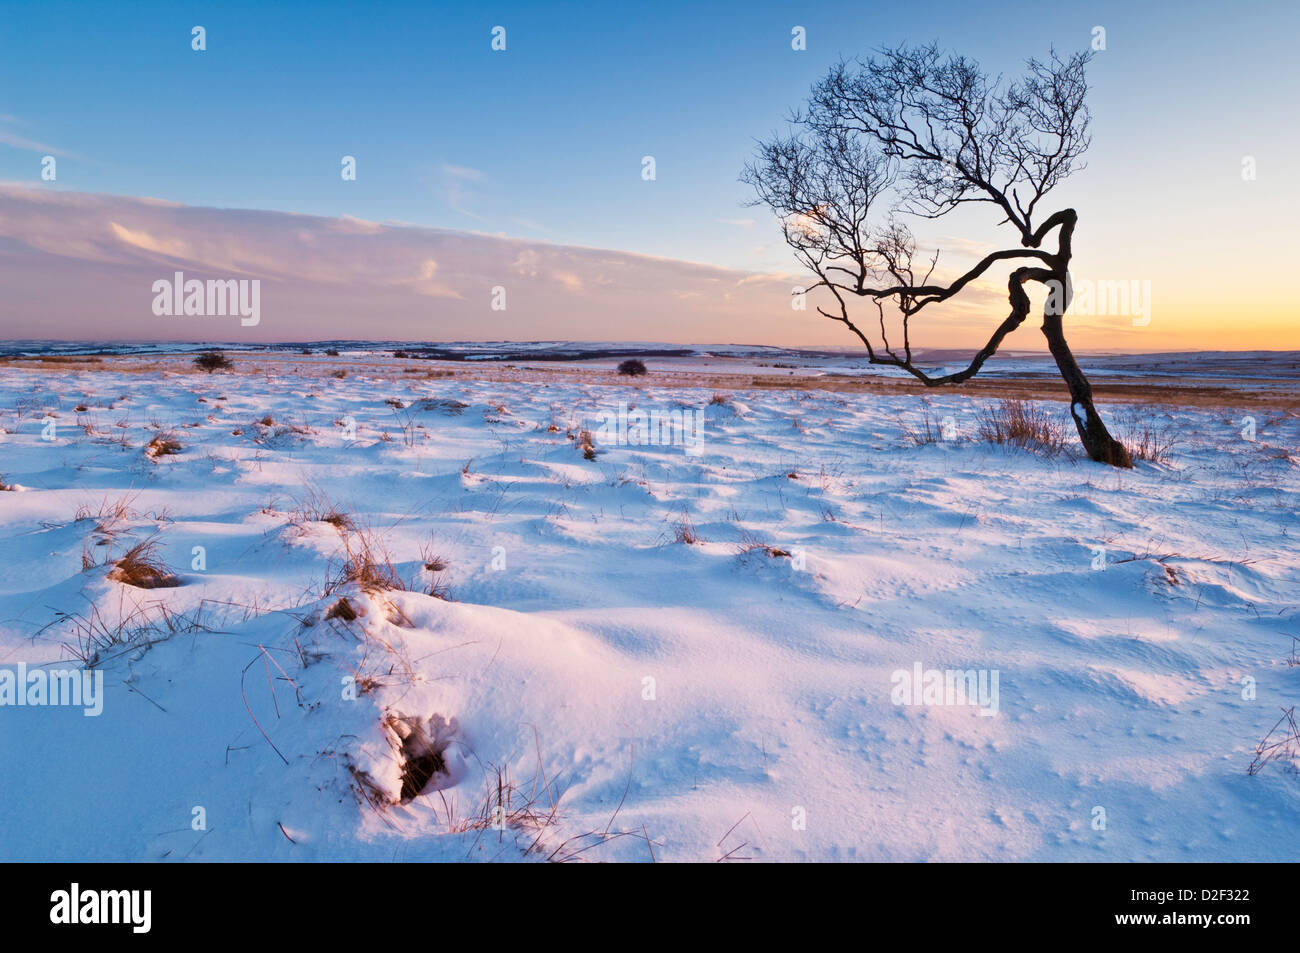 Twisted tree in the snow at sunset, Peak District National Park, Derbyshire, England, United Kingdom, GB EU Europe - Stock Image